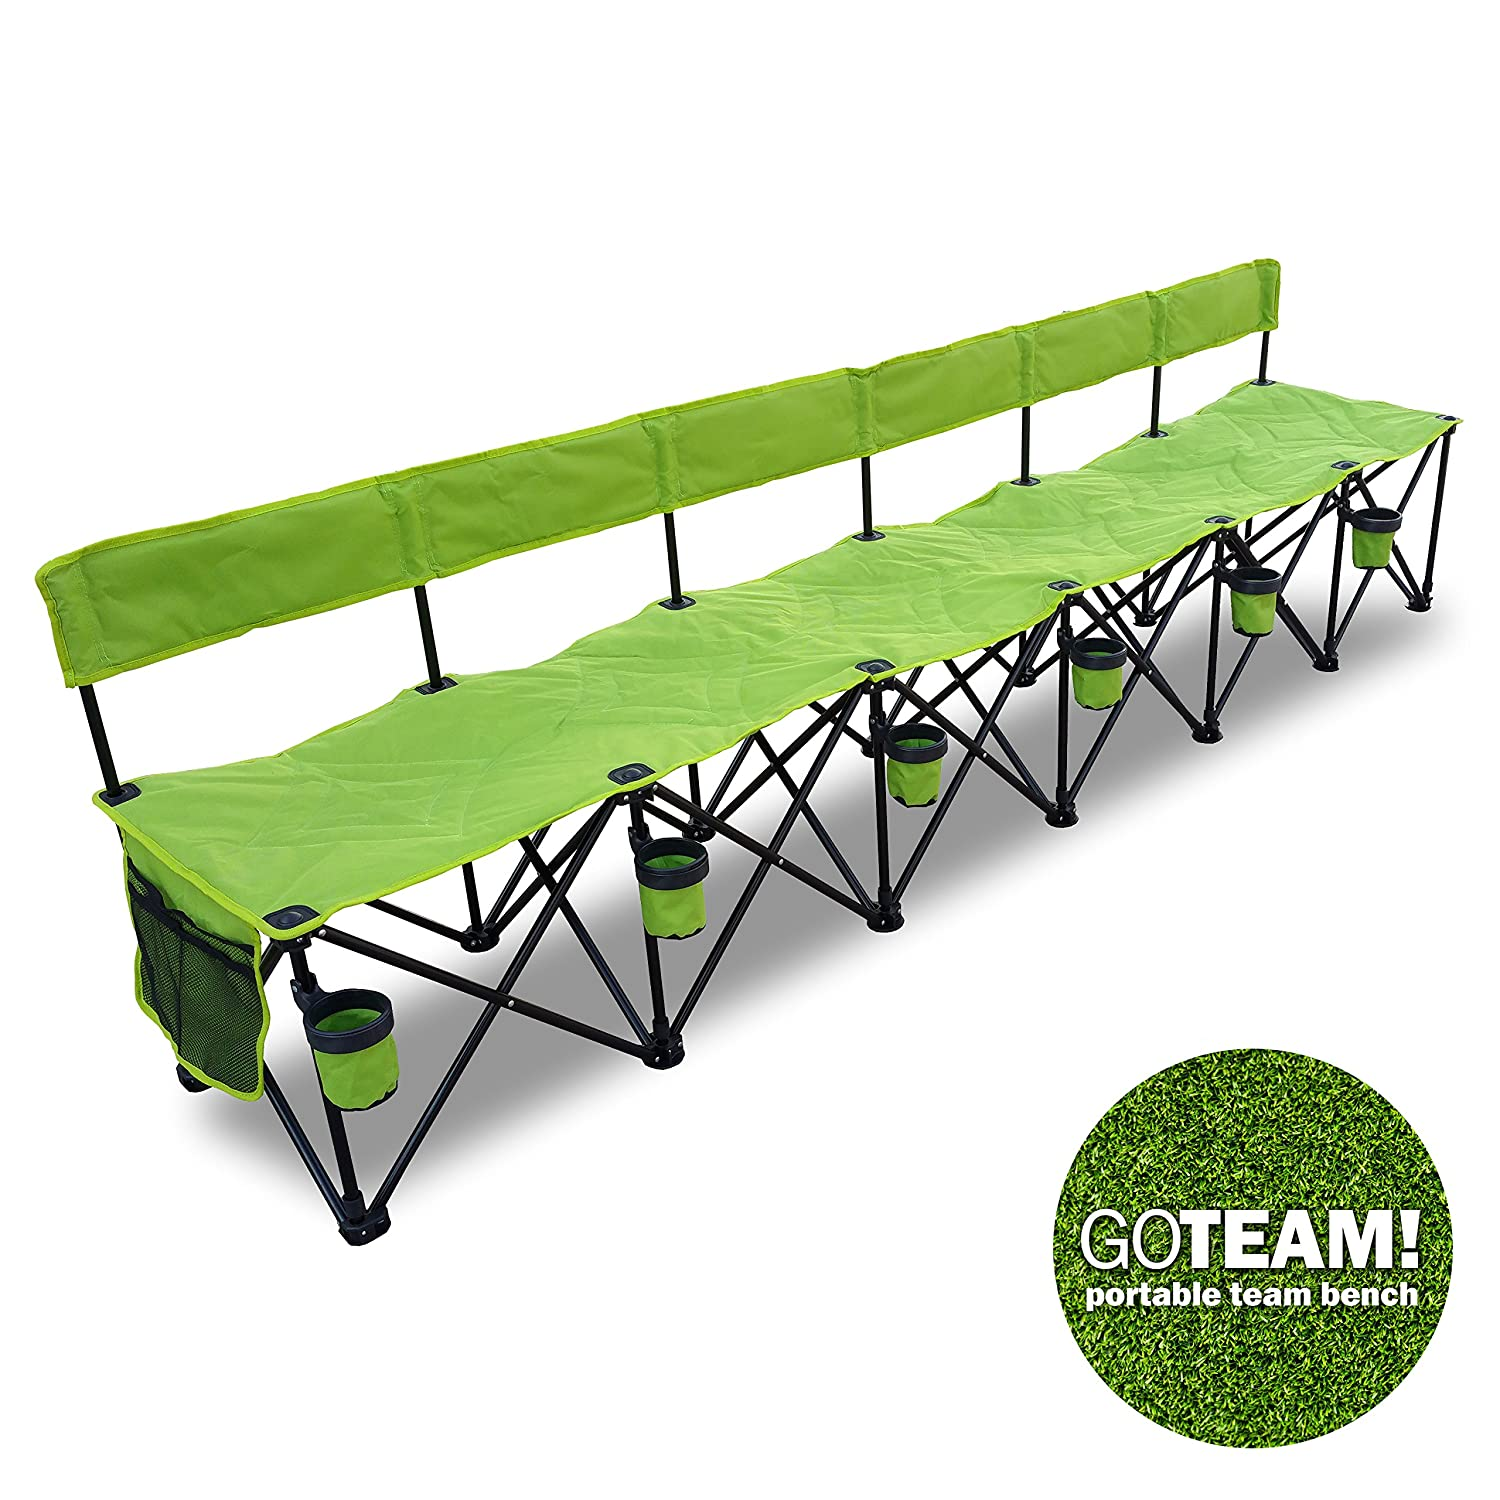 Best Portable Soccer Team Bench Reviews 6 Seat Travel Bench On Flipboard